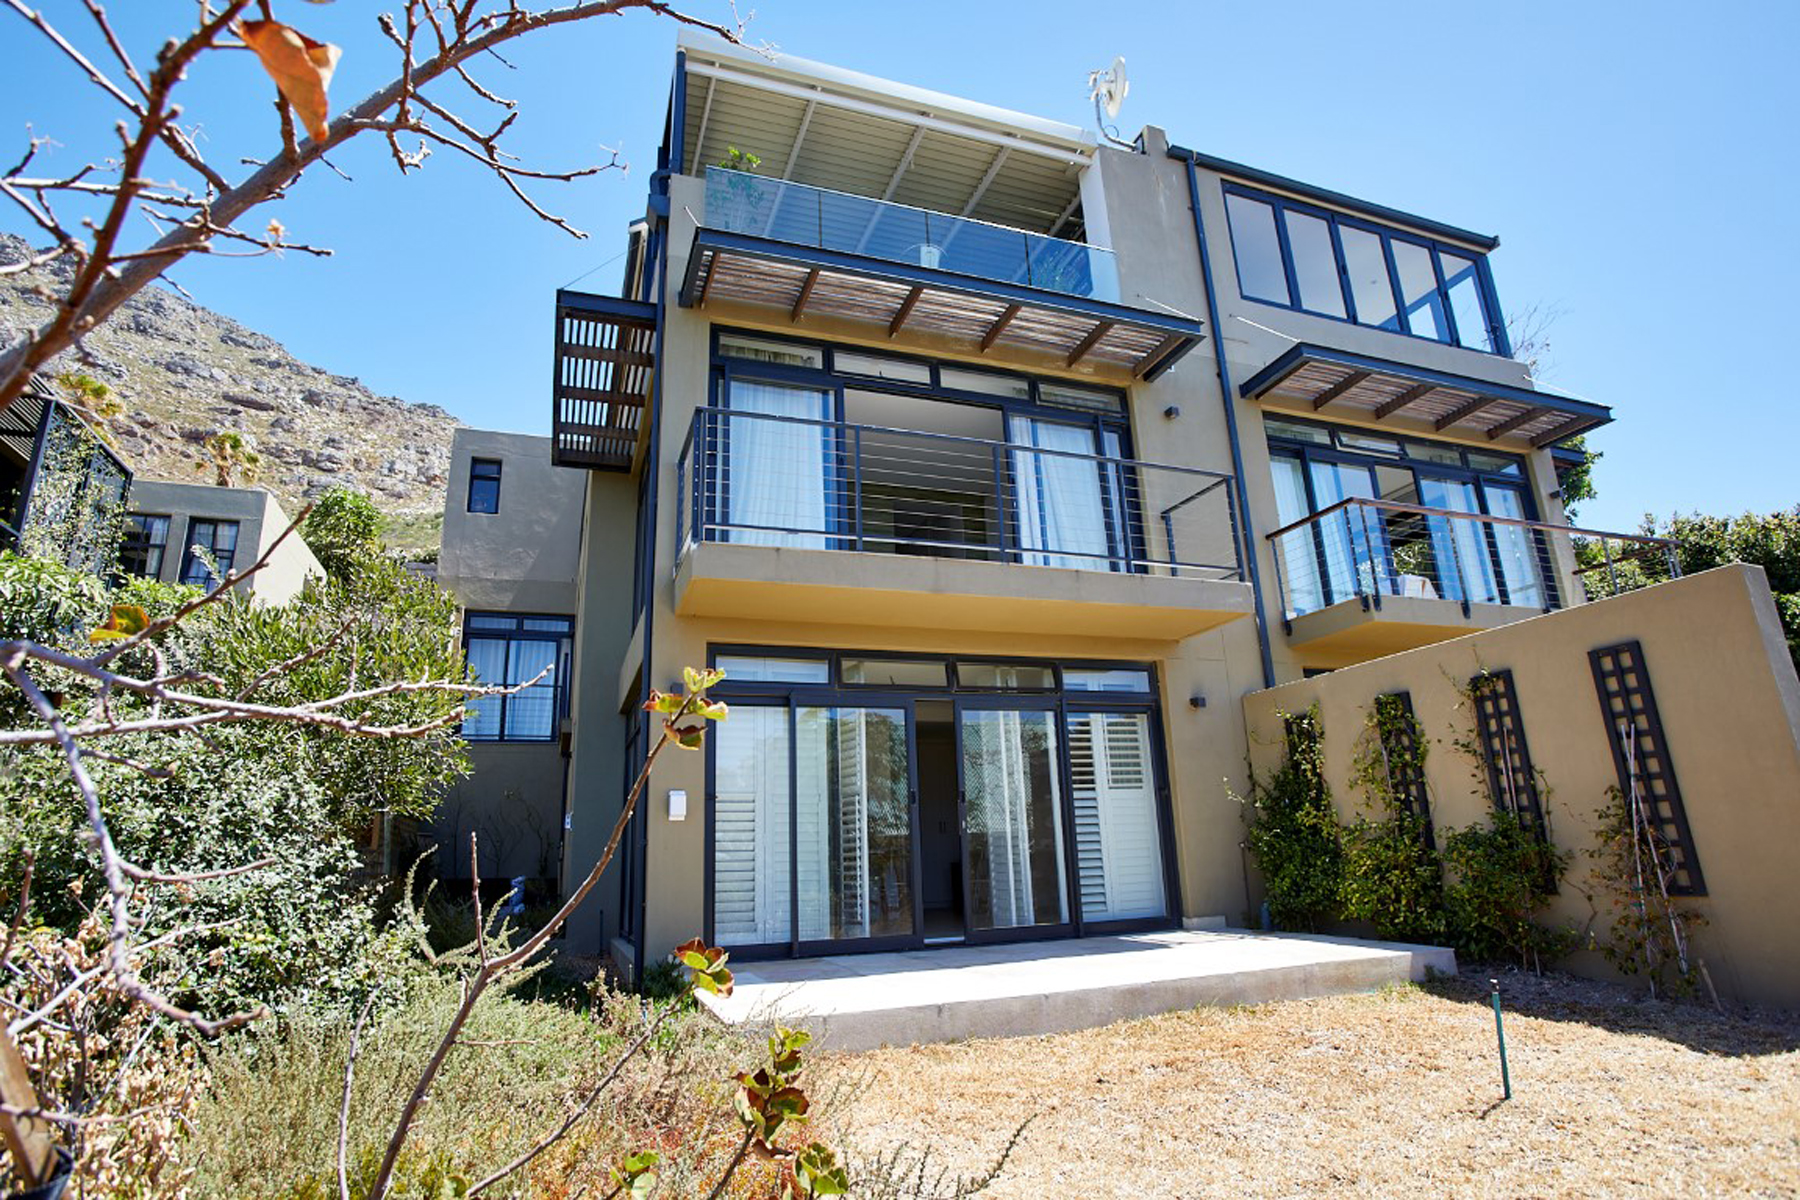 Multi-Family Home for Sale at Klein Welgemeend Estate Other Western Cape, Western Cape, South Africa